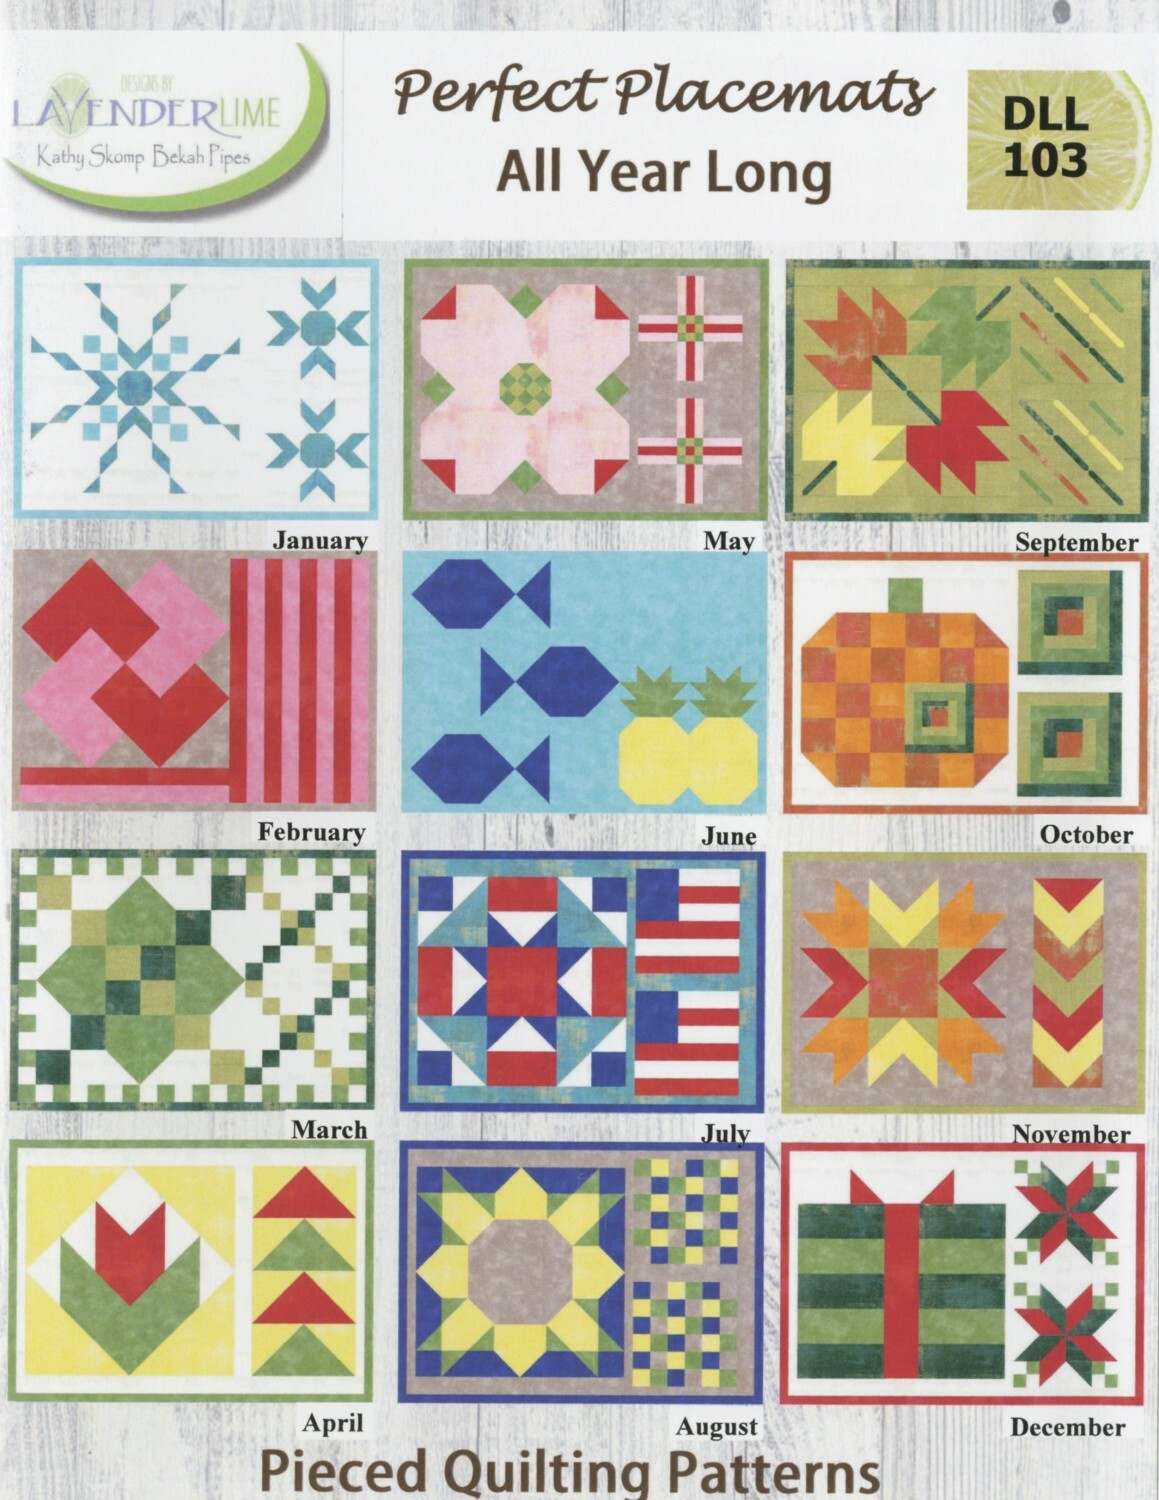 Perfect Placemats All Year Long Book 7AVQHS2H